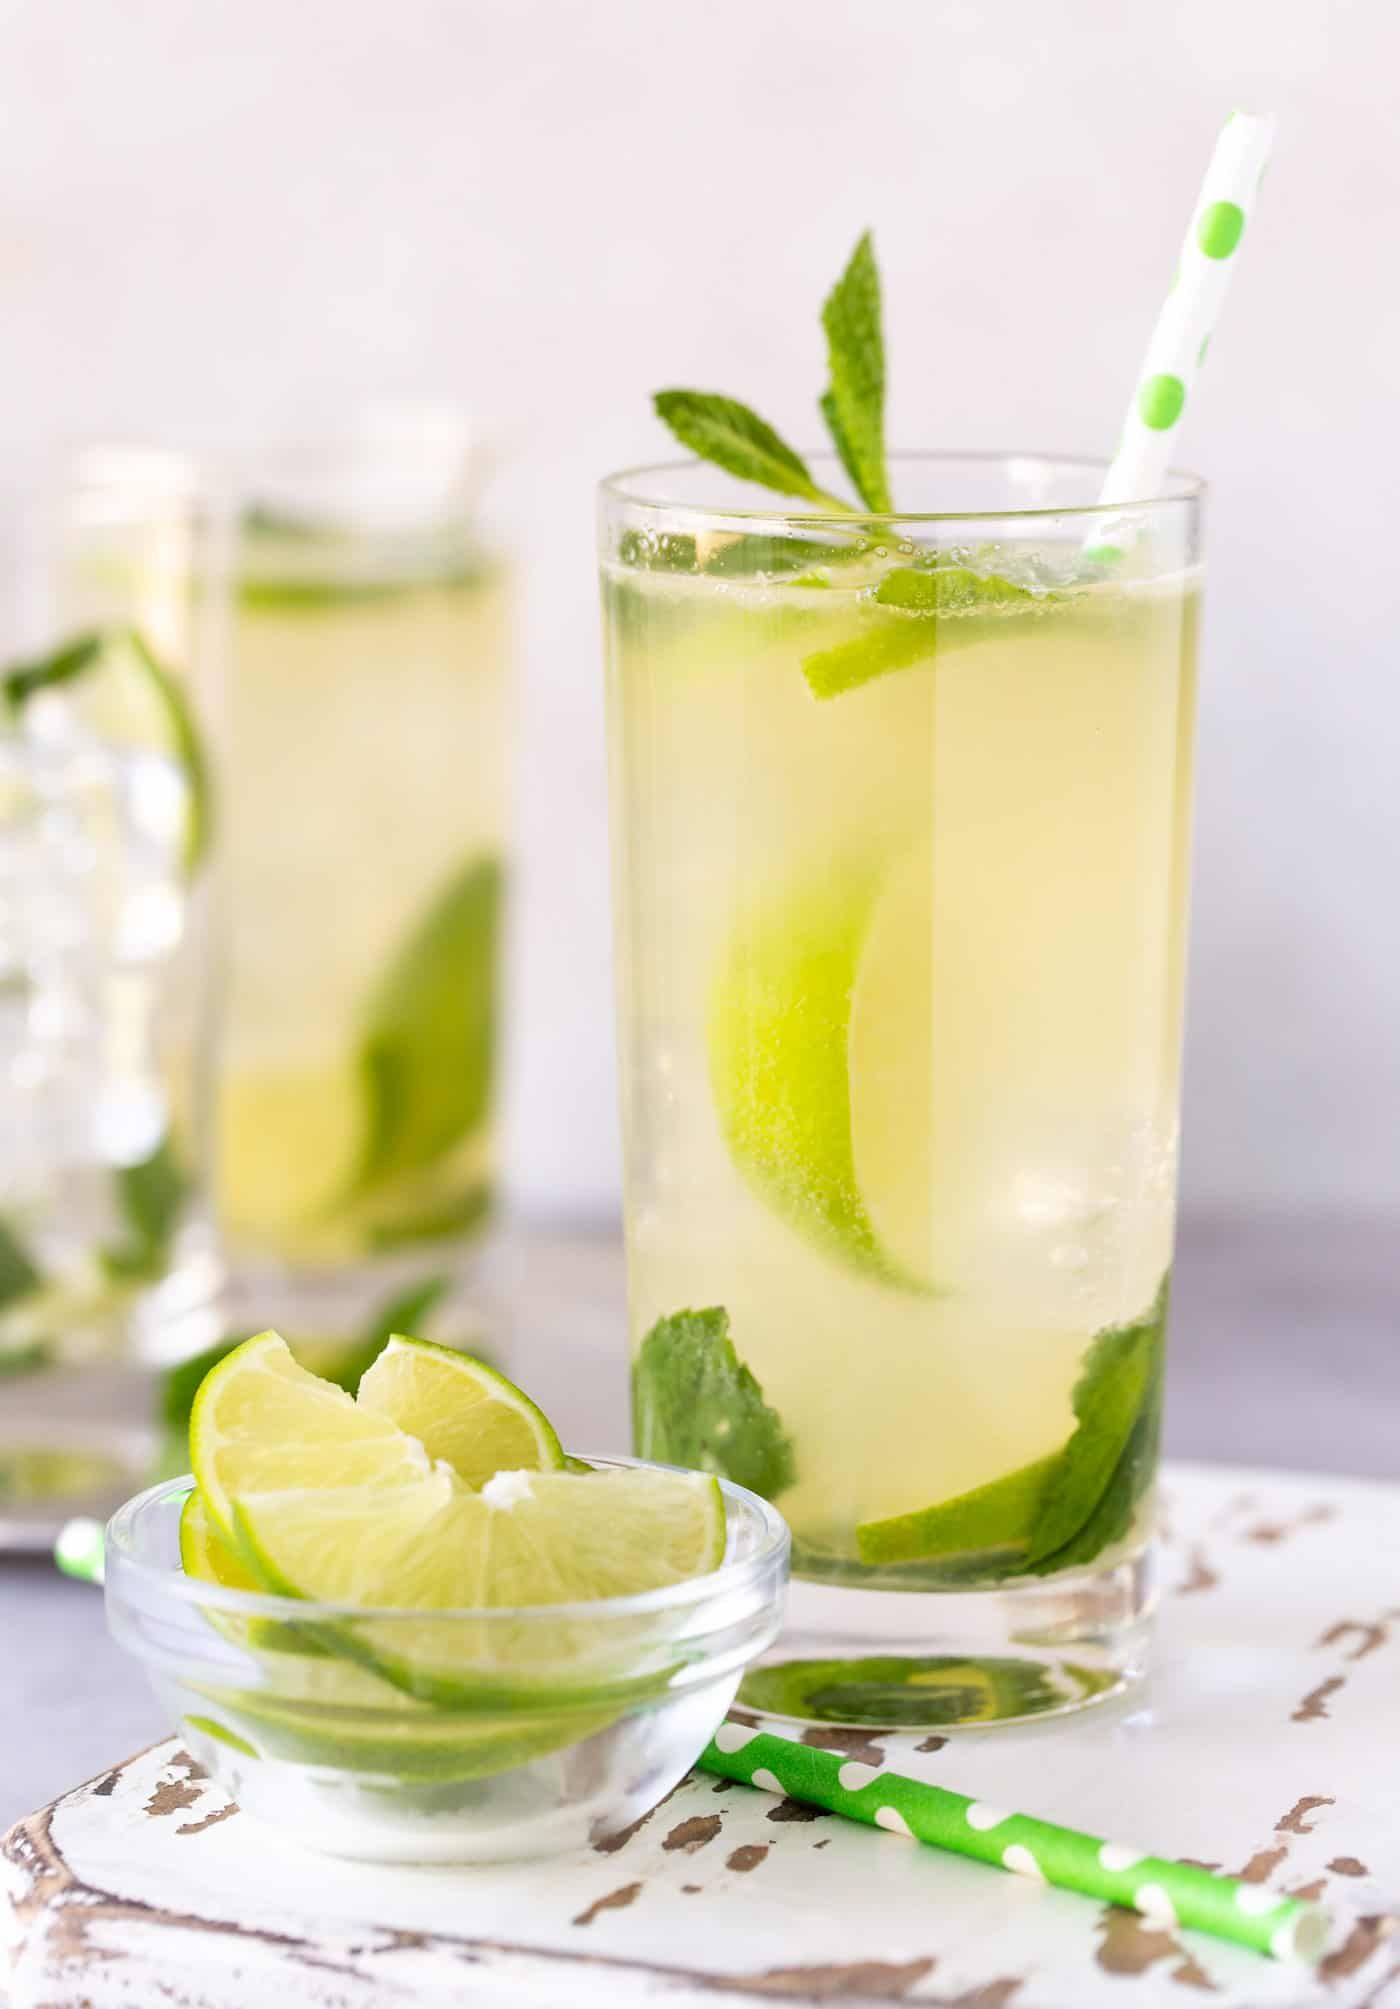 Light Summer Cocktail Recipes: This Tequila Mojito Recipe Is A Light And Refreshing